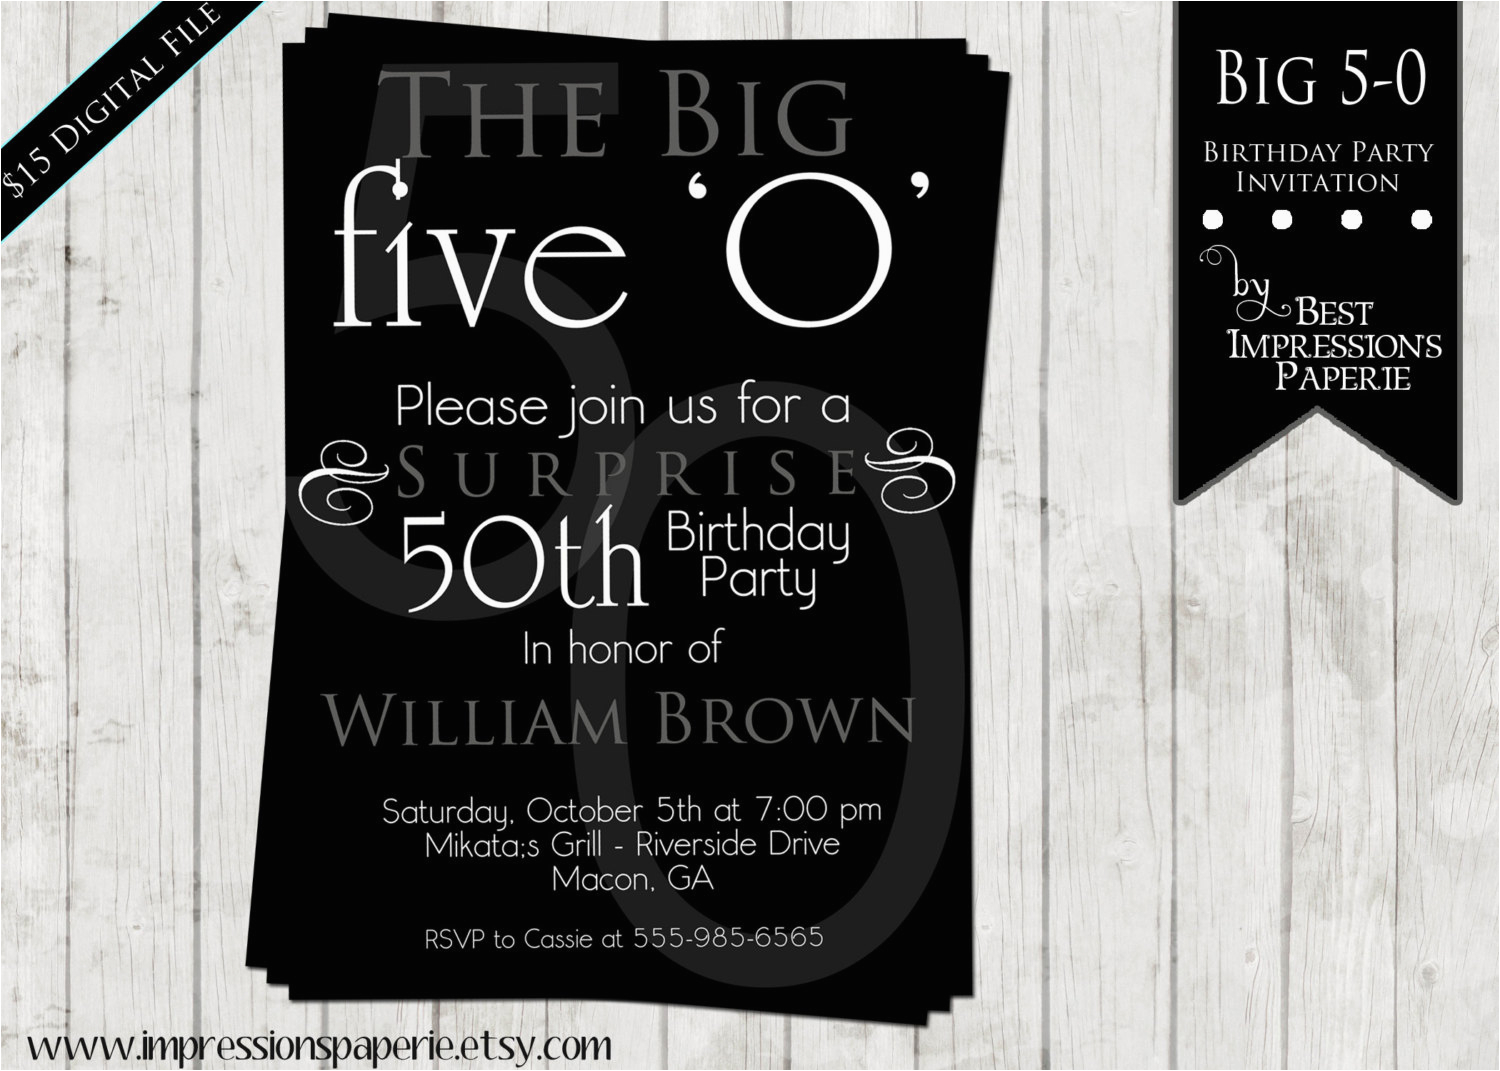 Invitations 50th Birthday Party Wordings For Men Dolanpedia